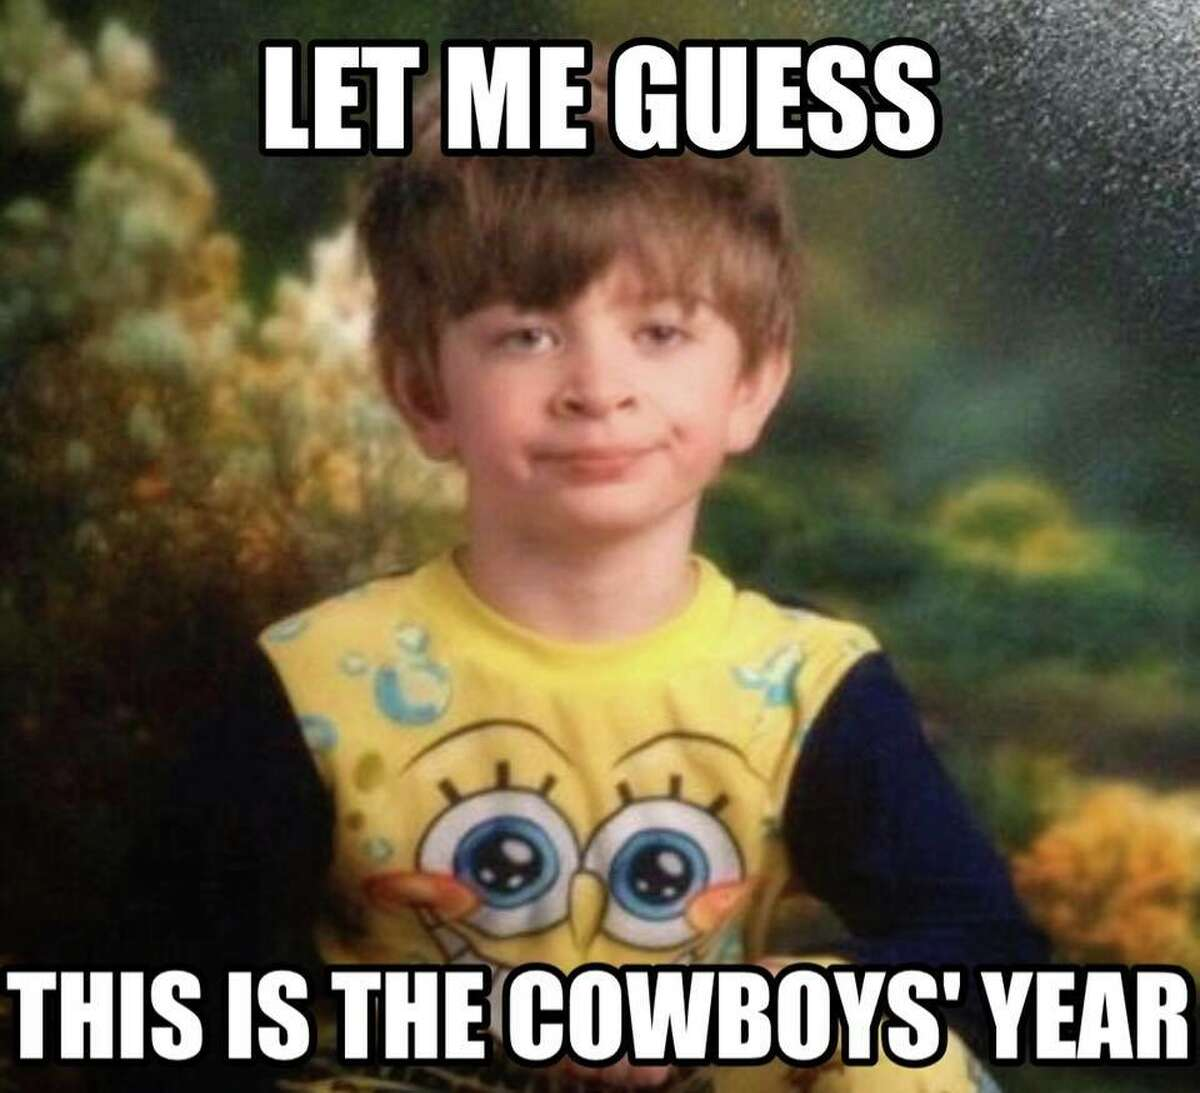 Memes Celebrate A Black Cat During The Cowboys Win